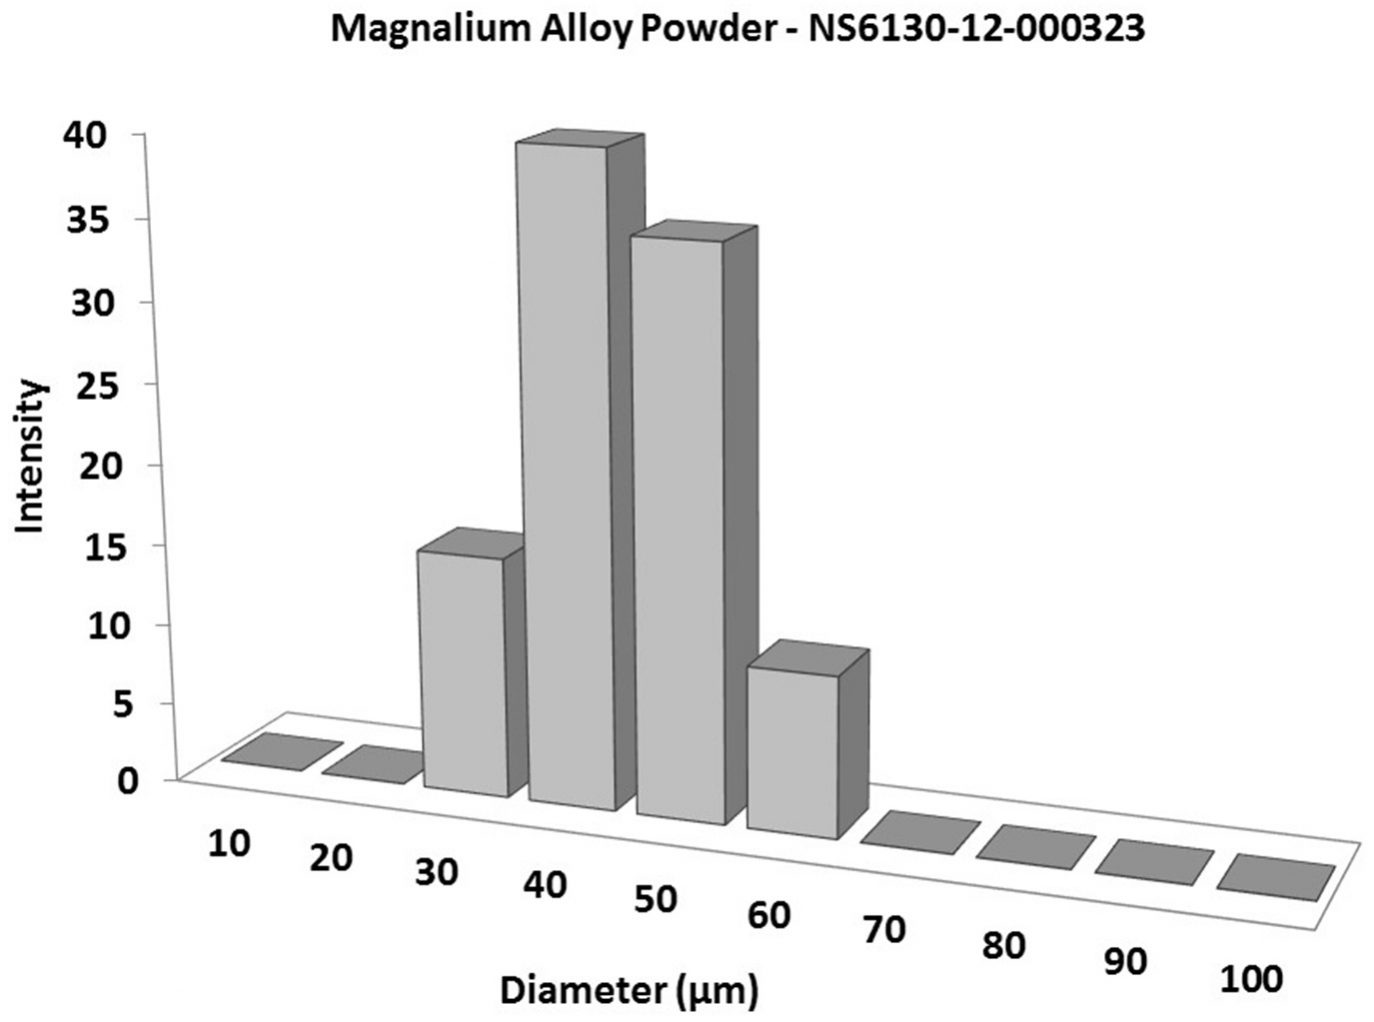 Particles Size Analysis - Magnalium Alloy Powder